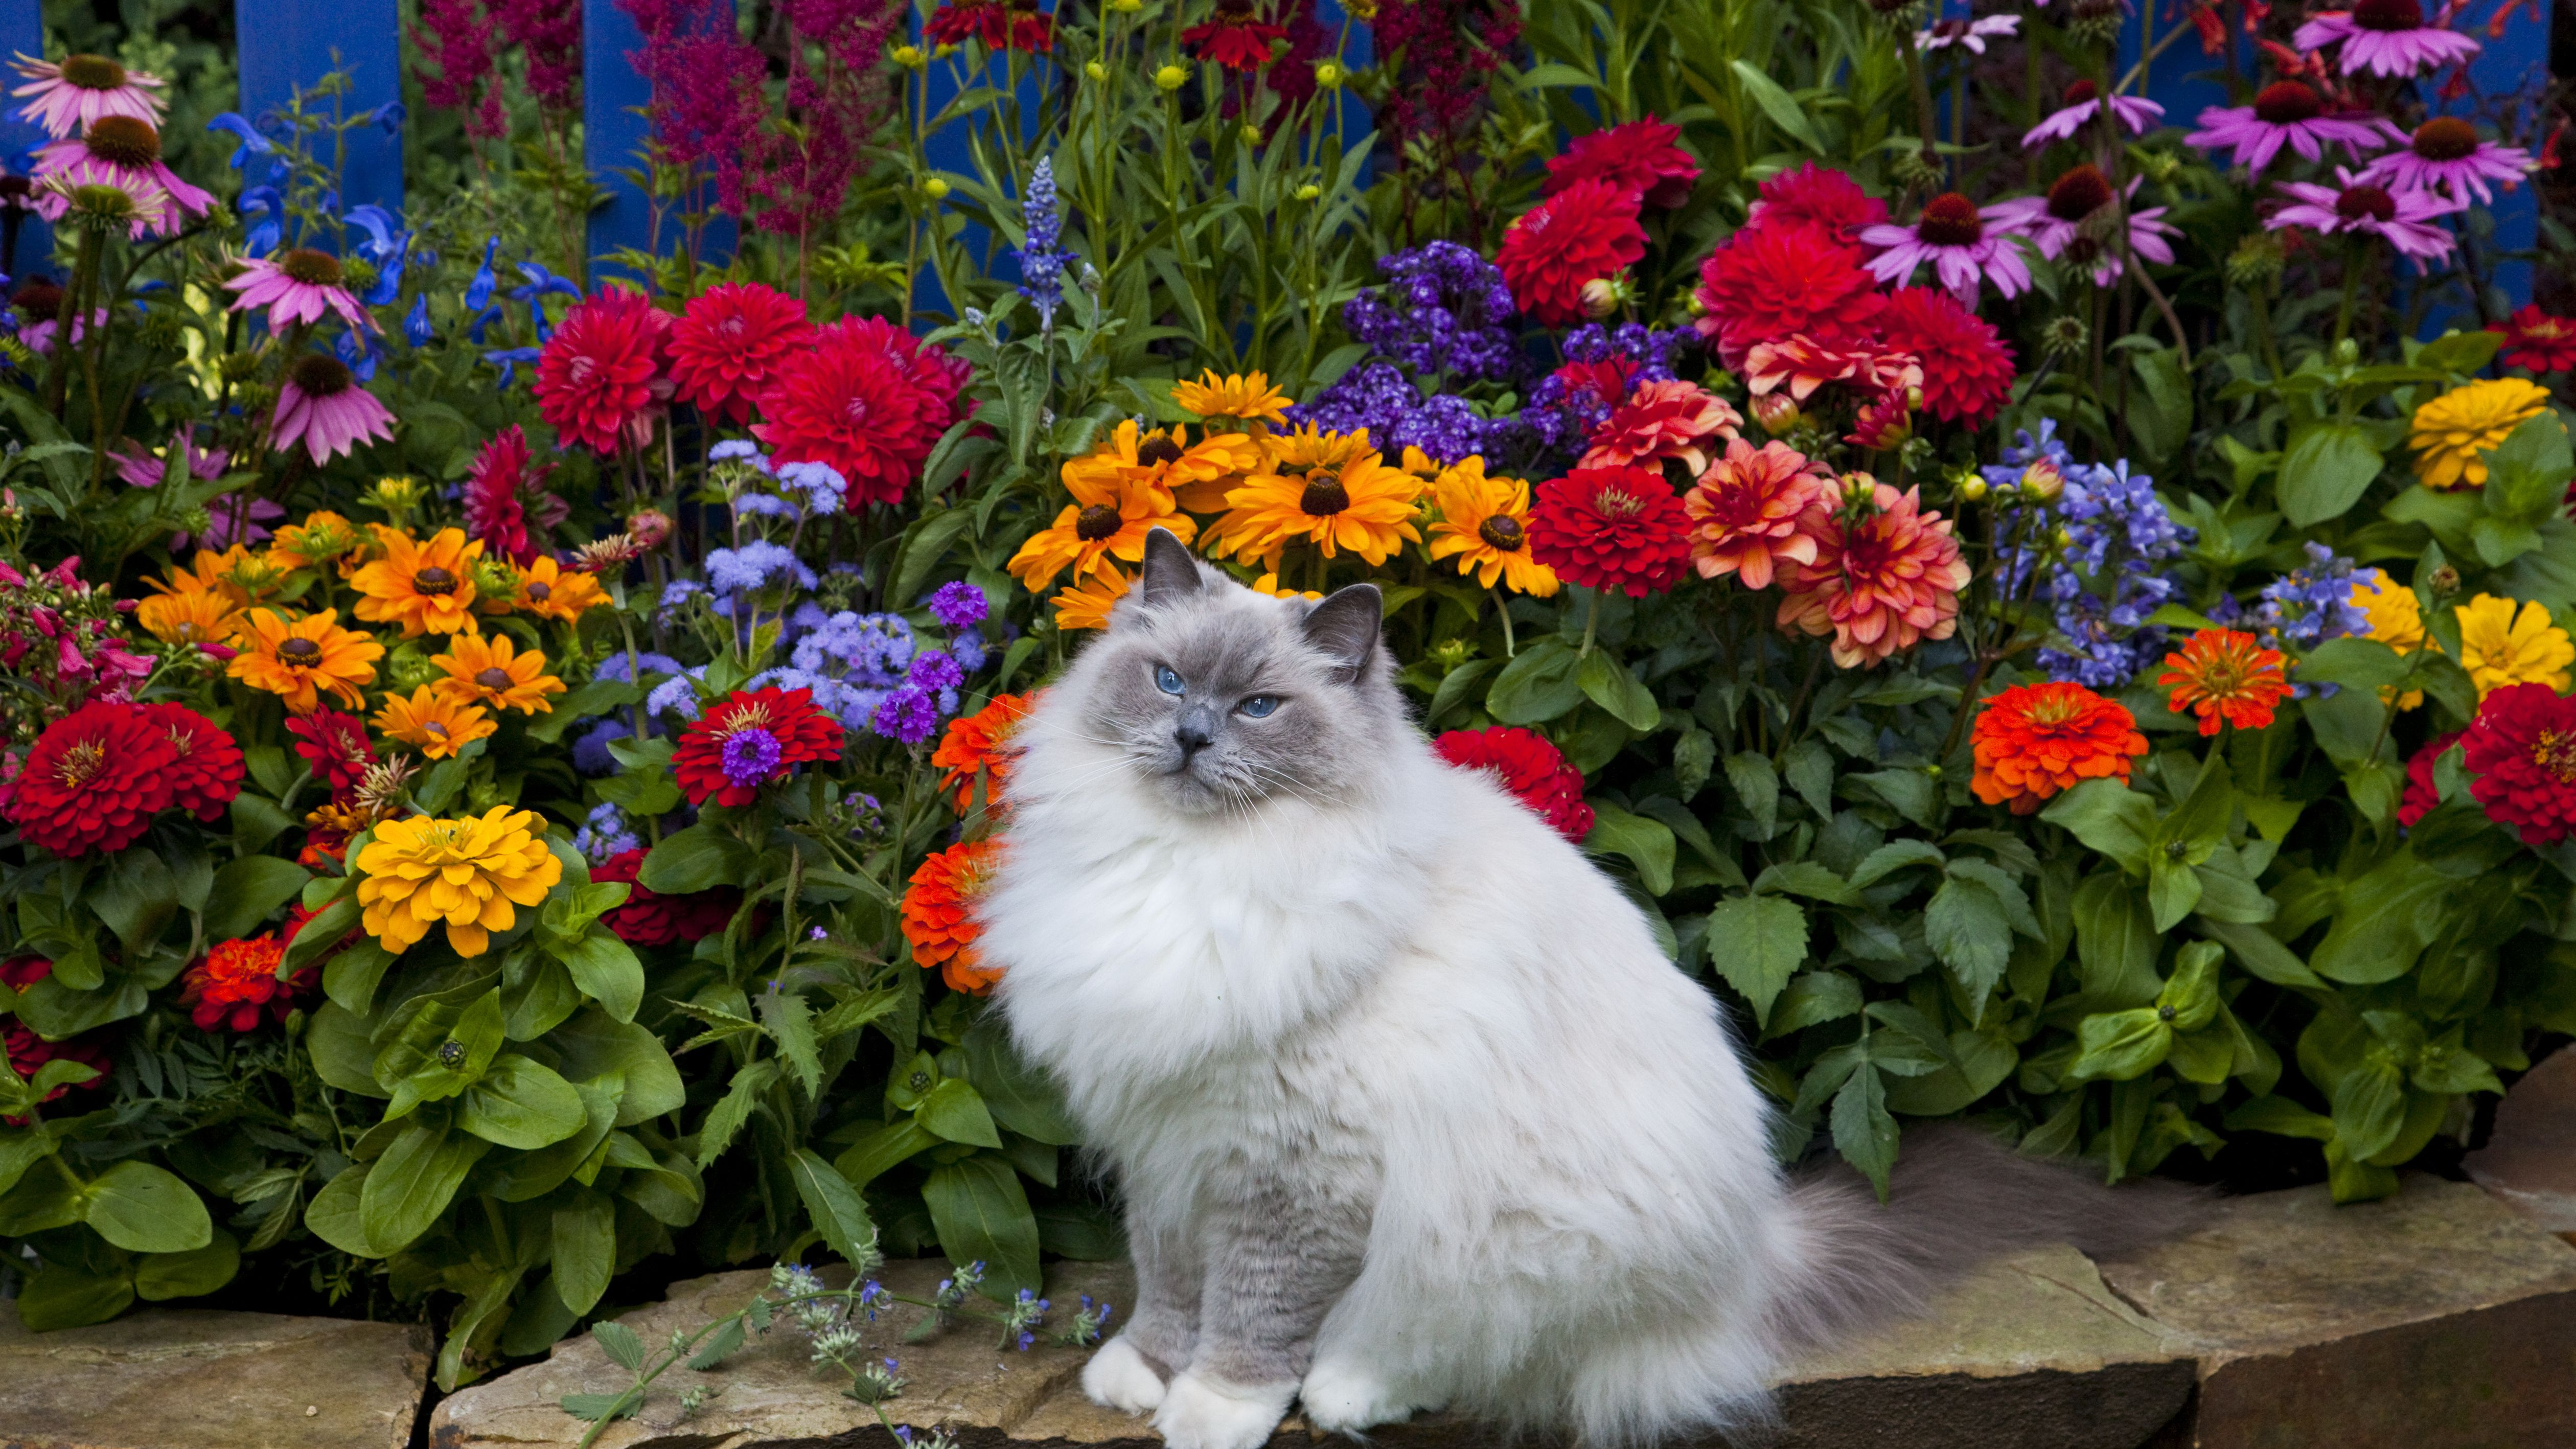 Methods To Keep Cats Out Of Flower Beds